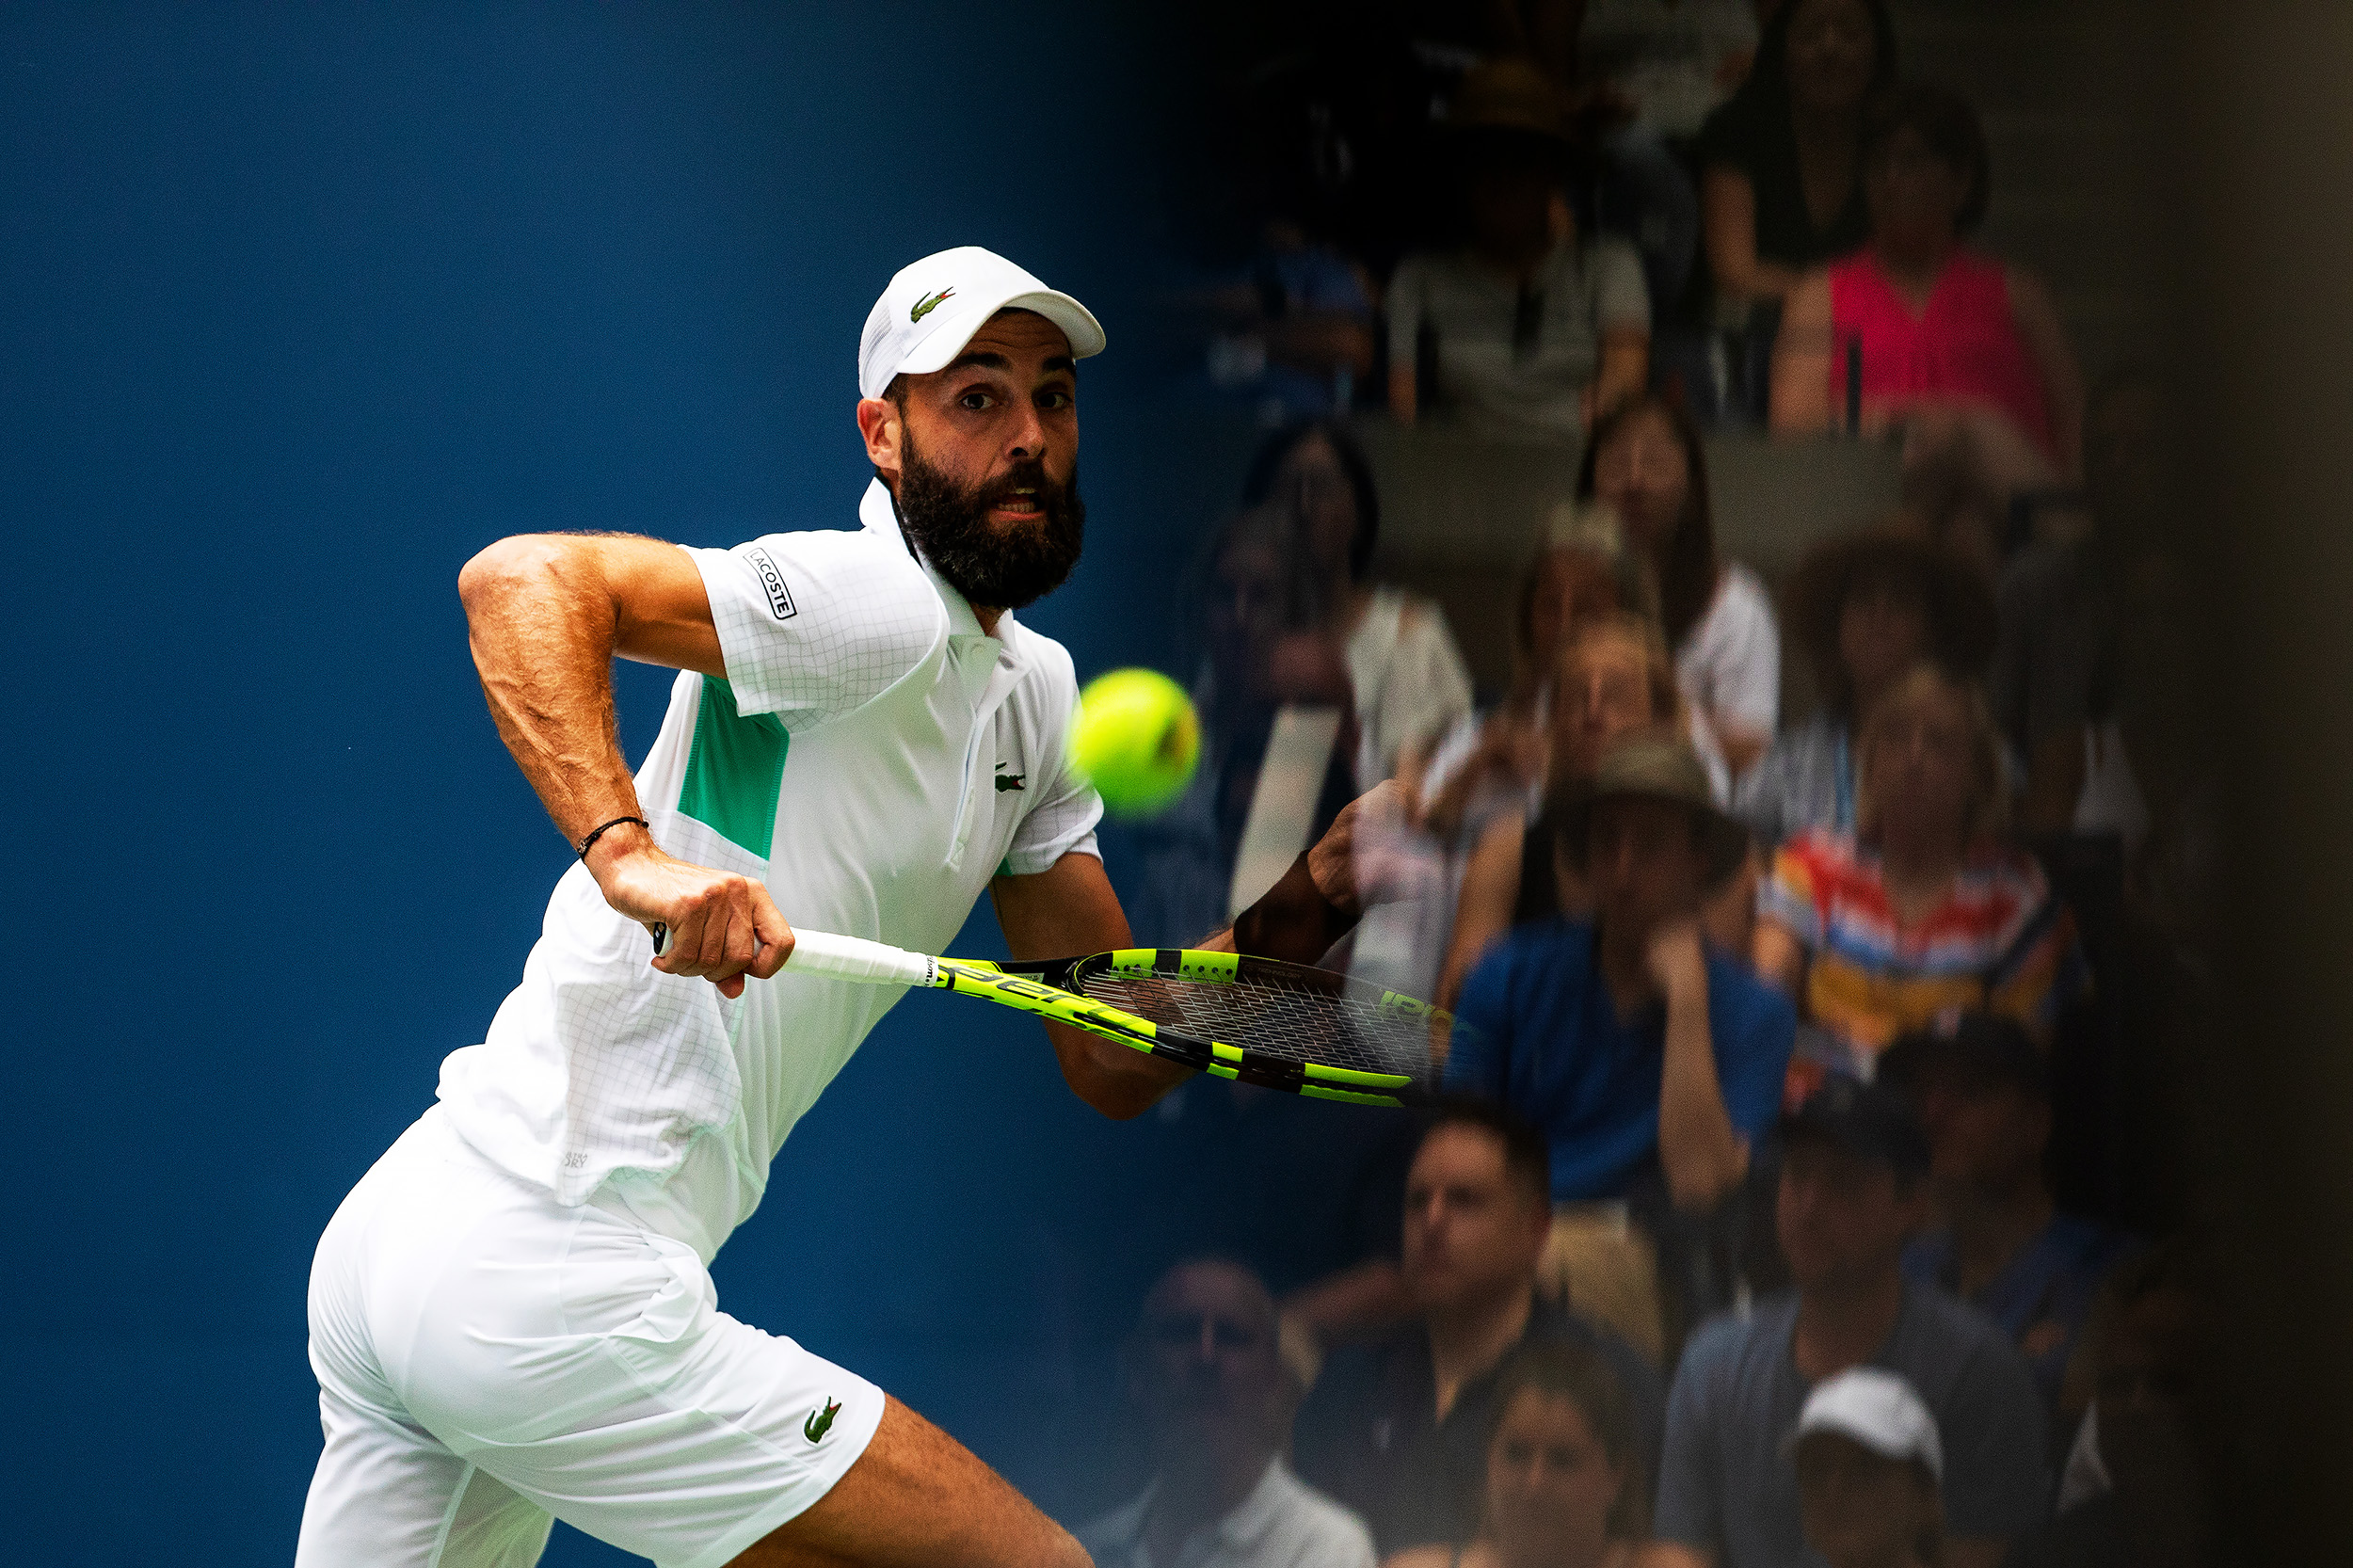 Benoît Paire of France chase down a Rodger Federer of Switzerland return during the 4th day of matches at Arthur Ashe Stadium in Queens, New York.